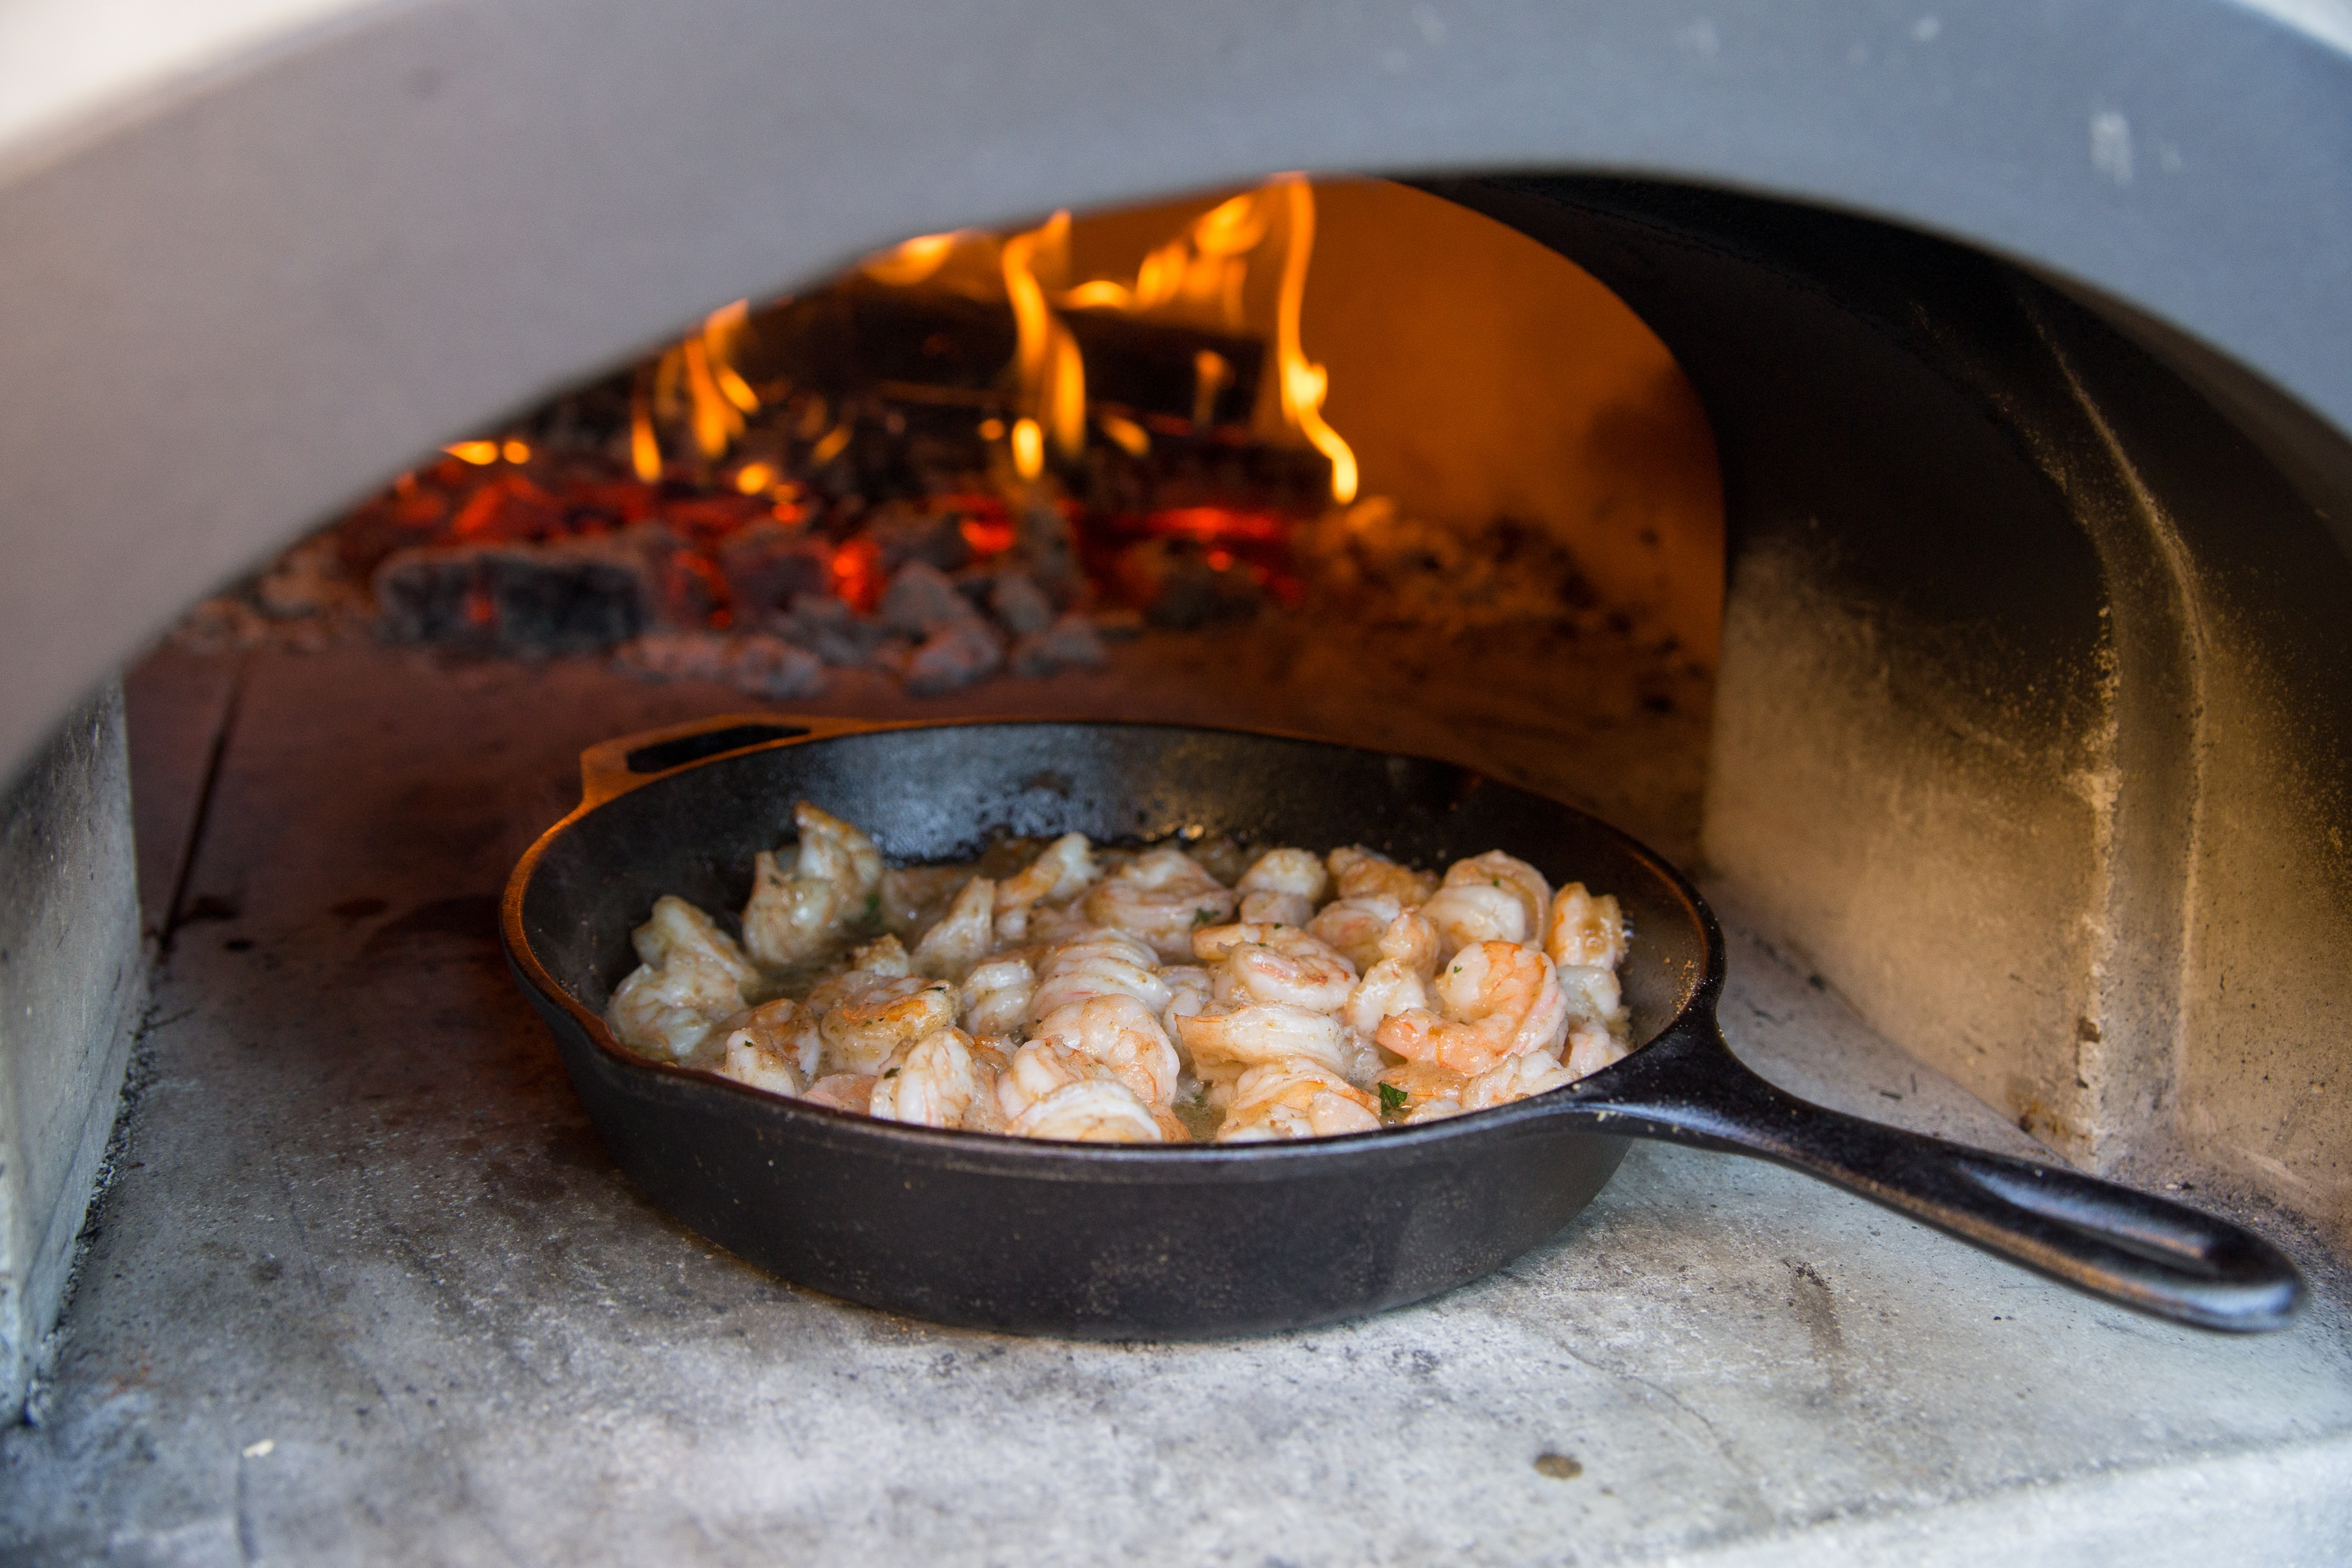 shrimp cooked up in a pizza oven